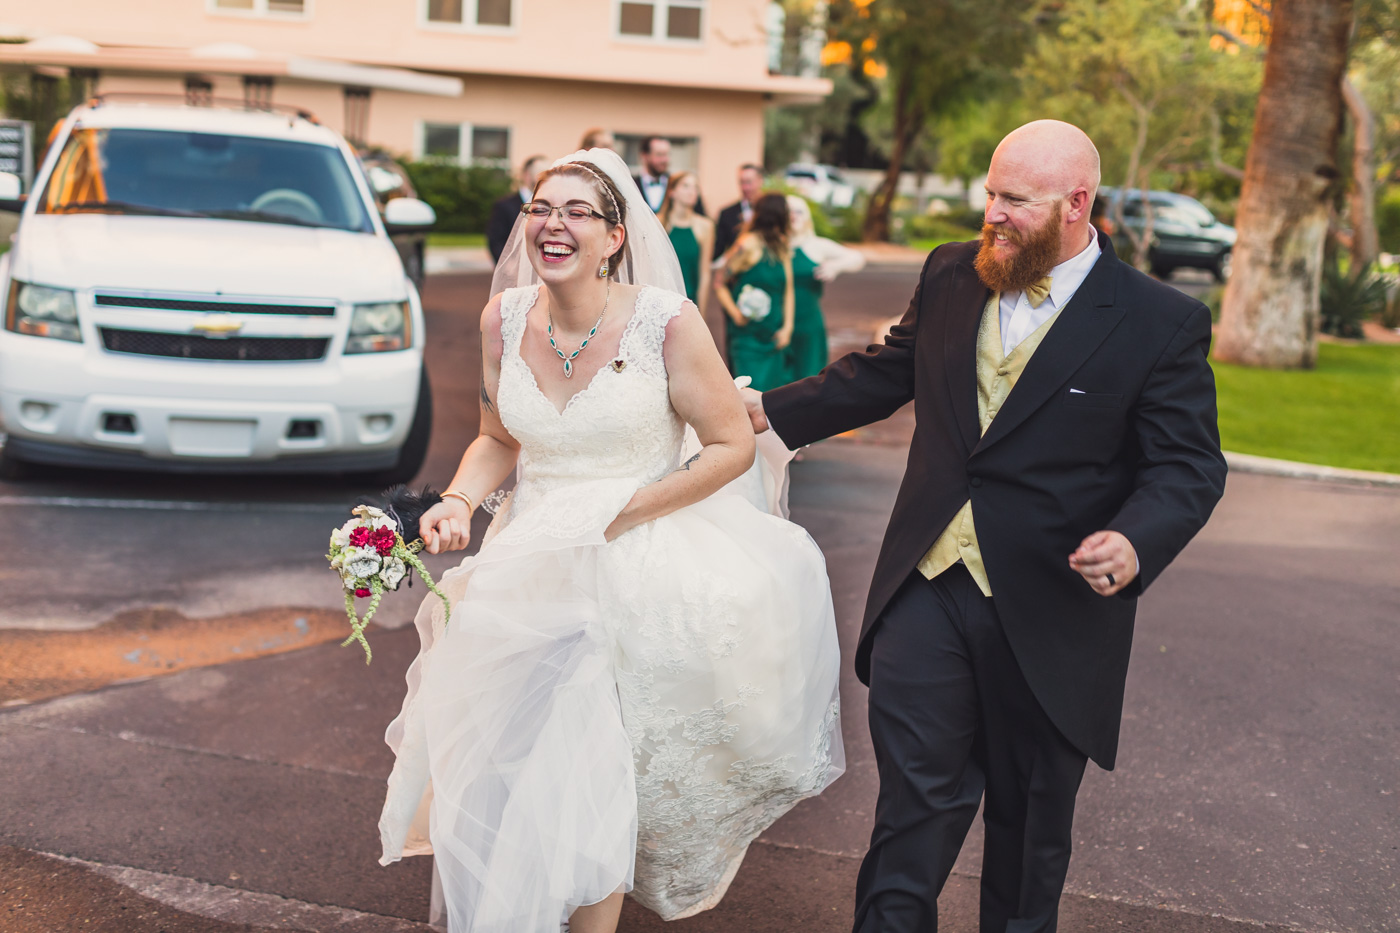 bride-and-groom-candid-walking-moment.jpg